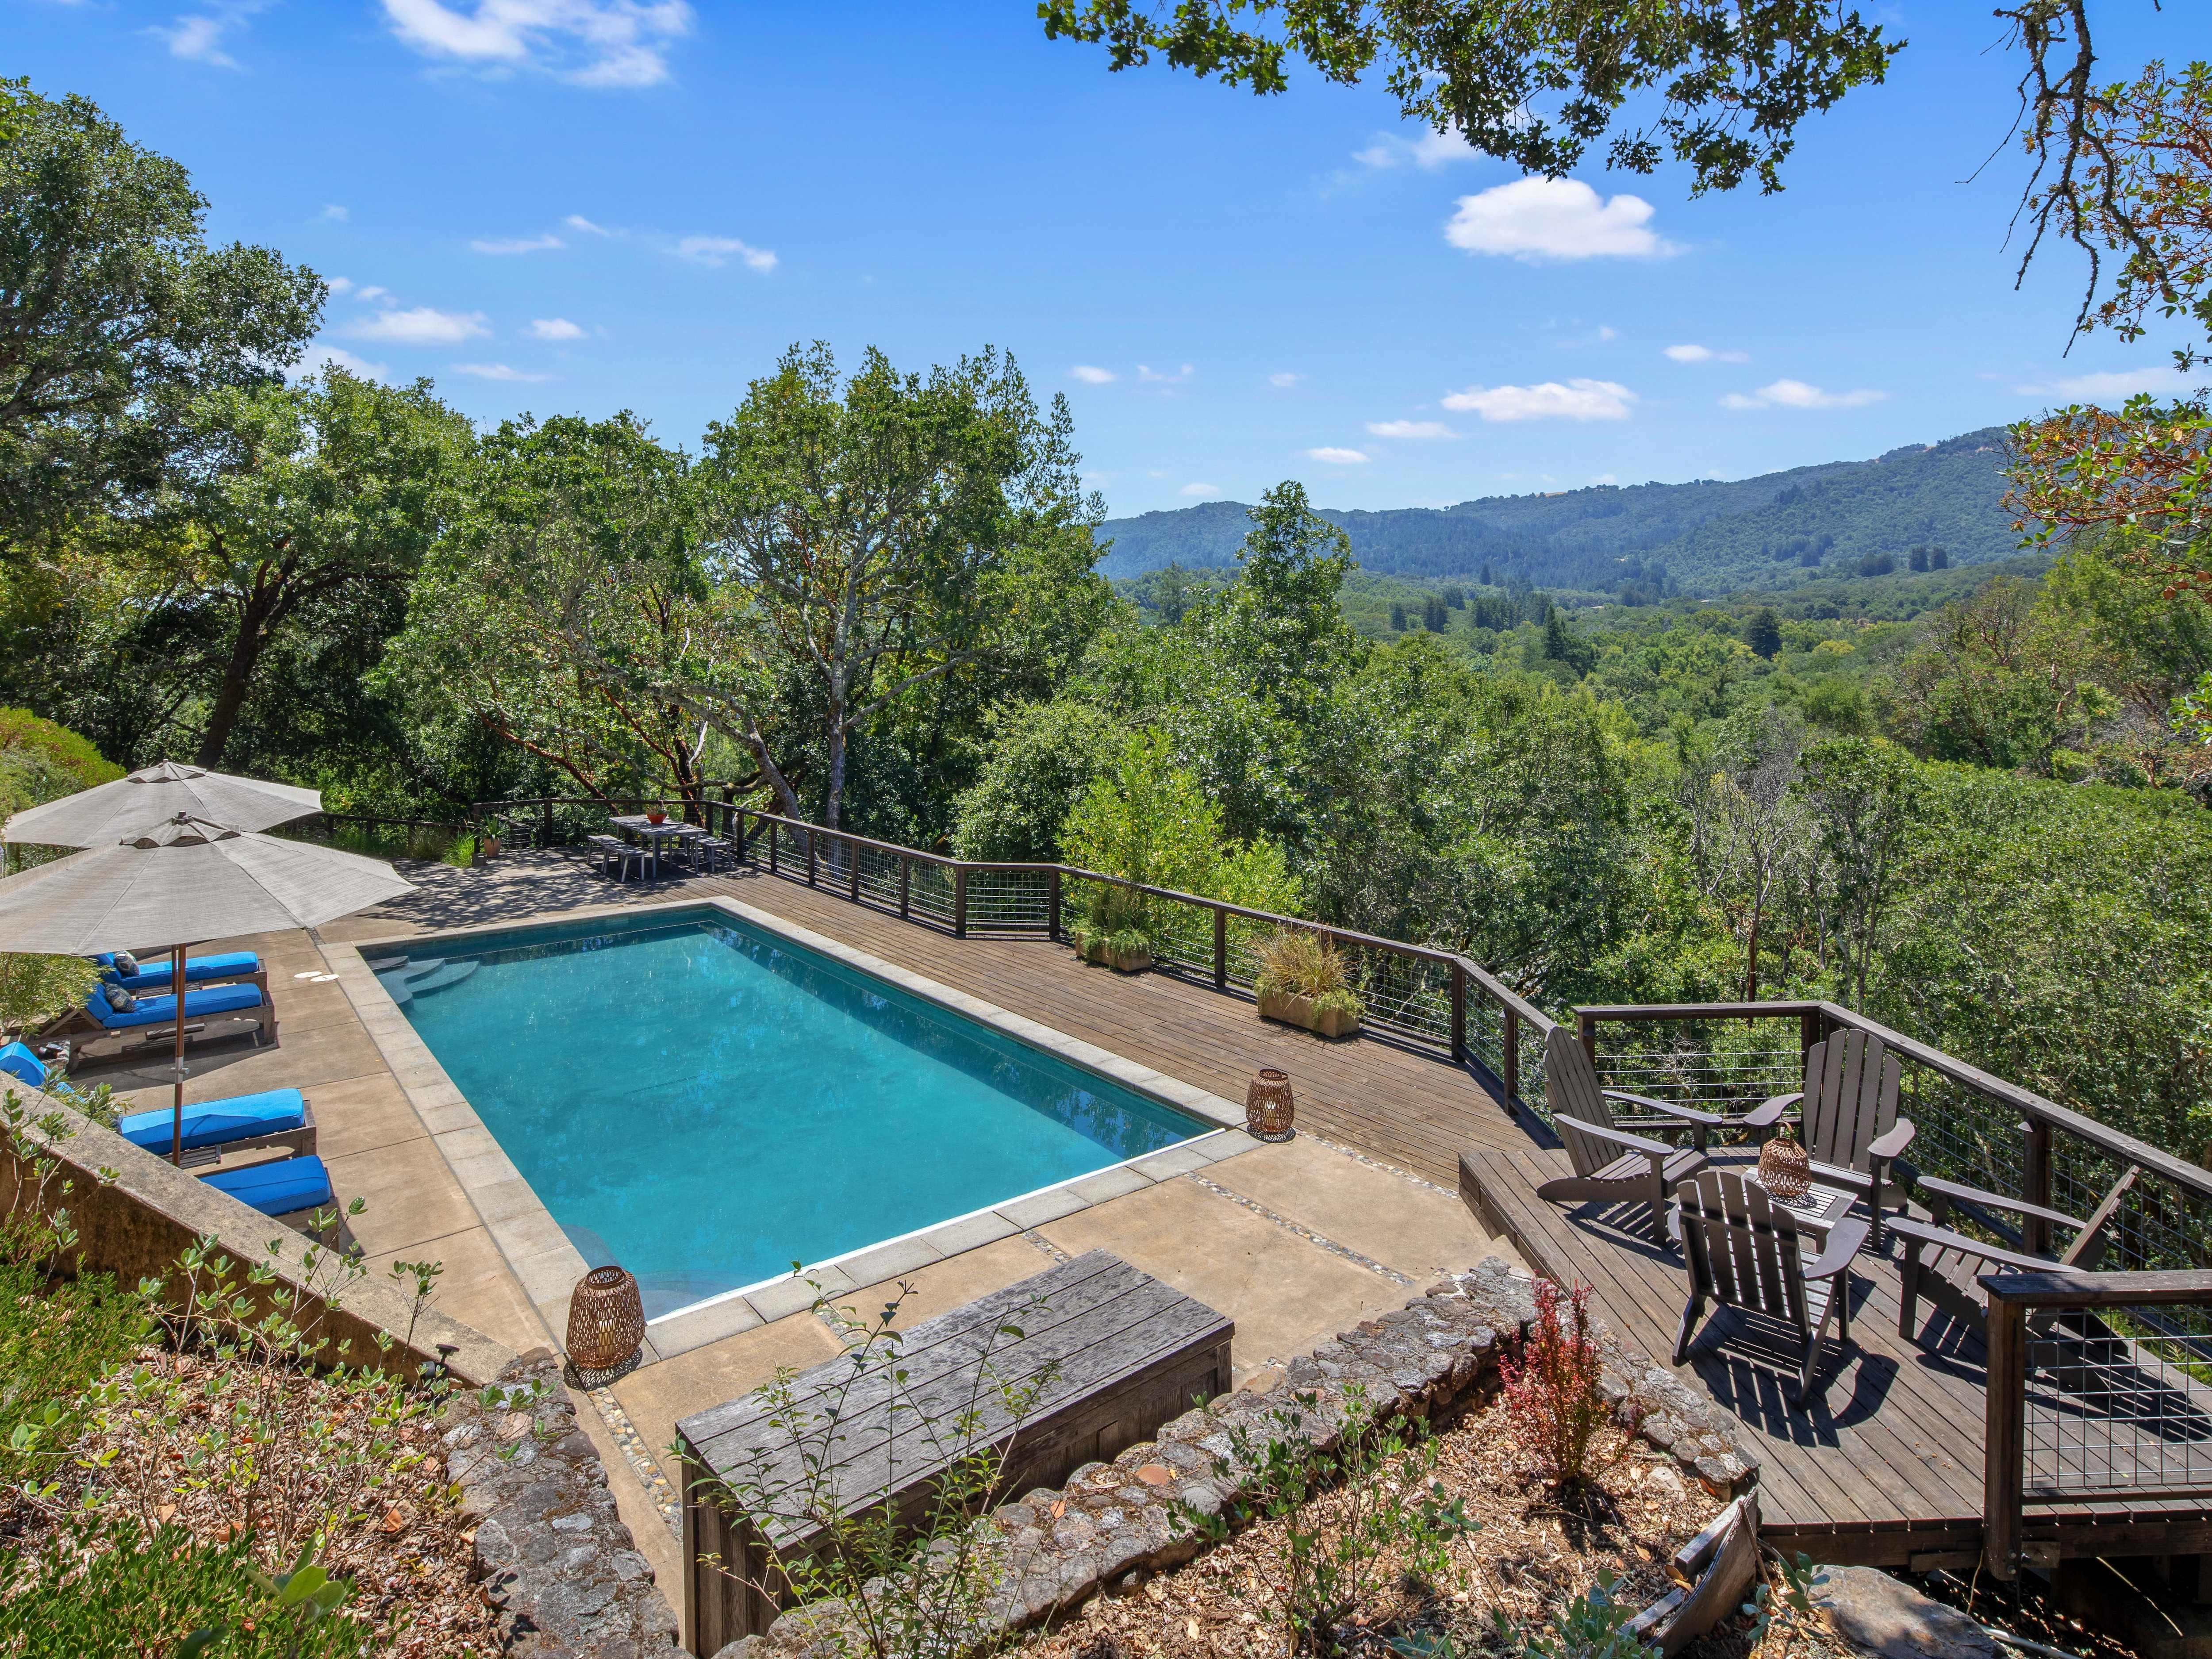 Welcome to Glen Ellen! This home is professionally managed by TurnKey Vacation Rentals.